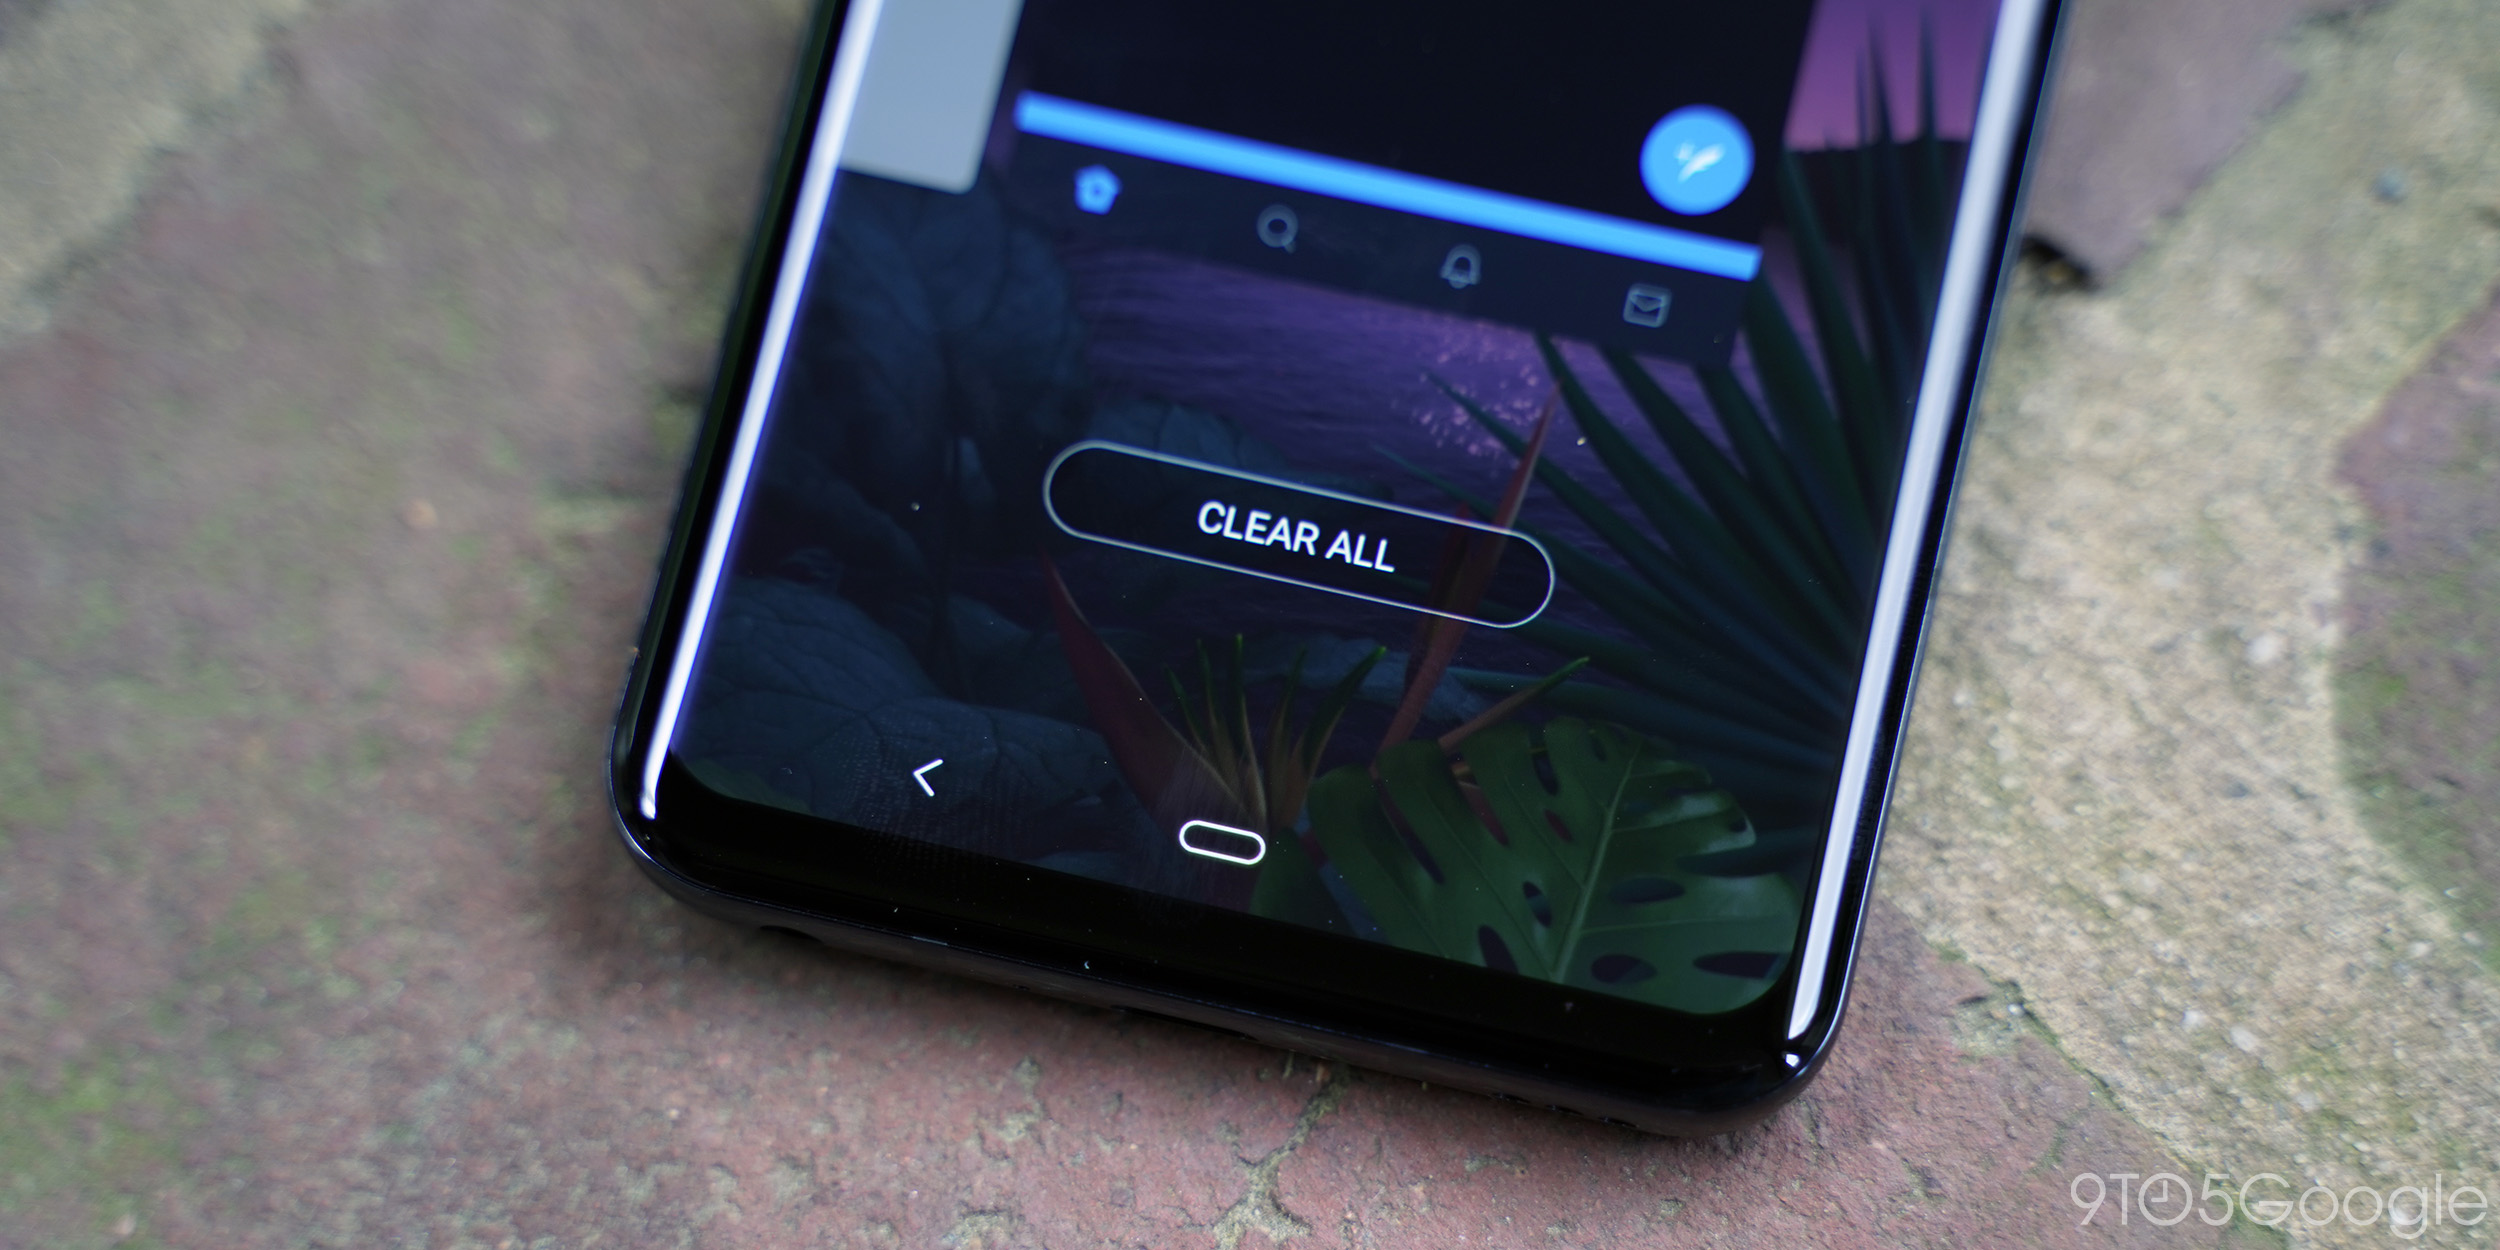 Review: LG G8 ThinQ has great ideas ruined by bad ones - 9to5Google